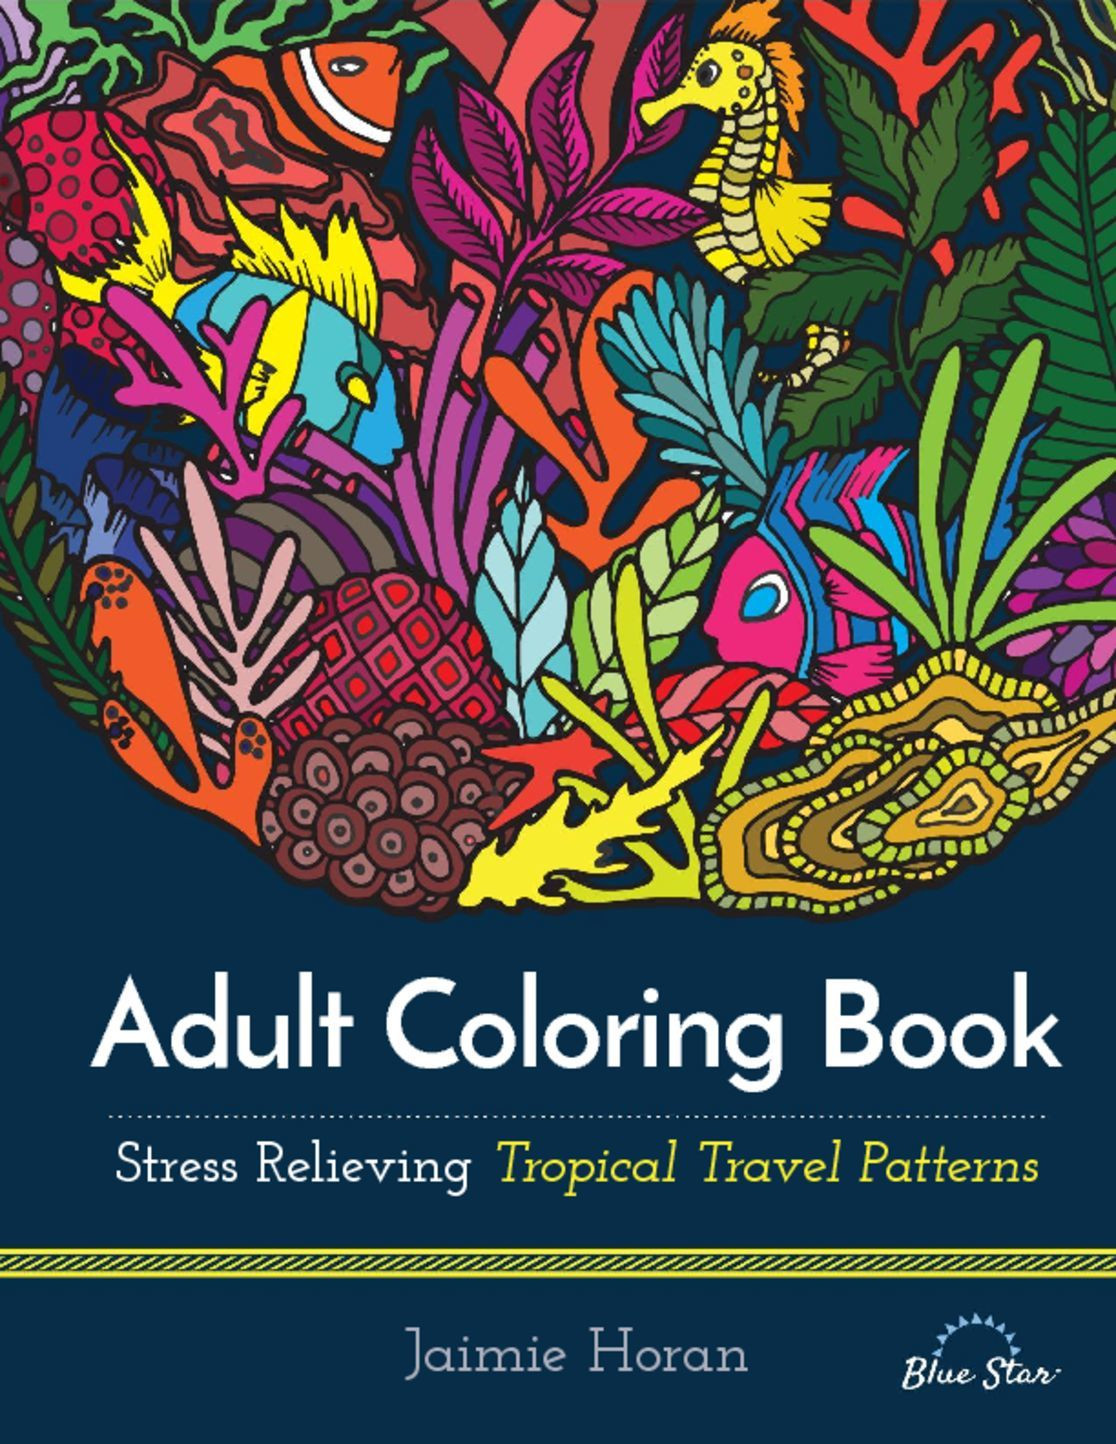 Best ideas about Adult Coloring Books Stress Relieving Patterns . Save or Pin Adult Coloring Book Stress Relieving Tropical Travel Now.